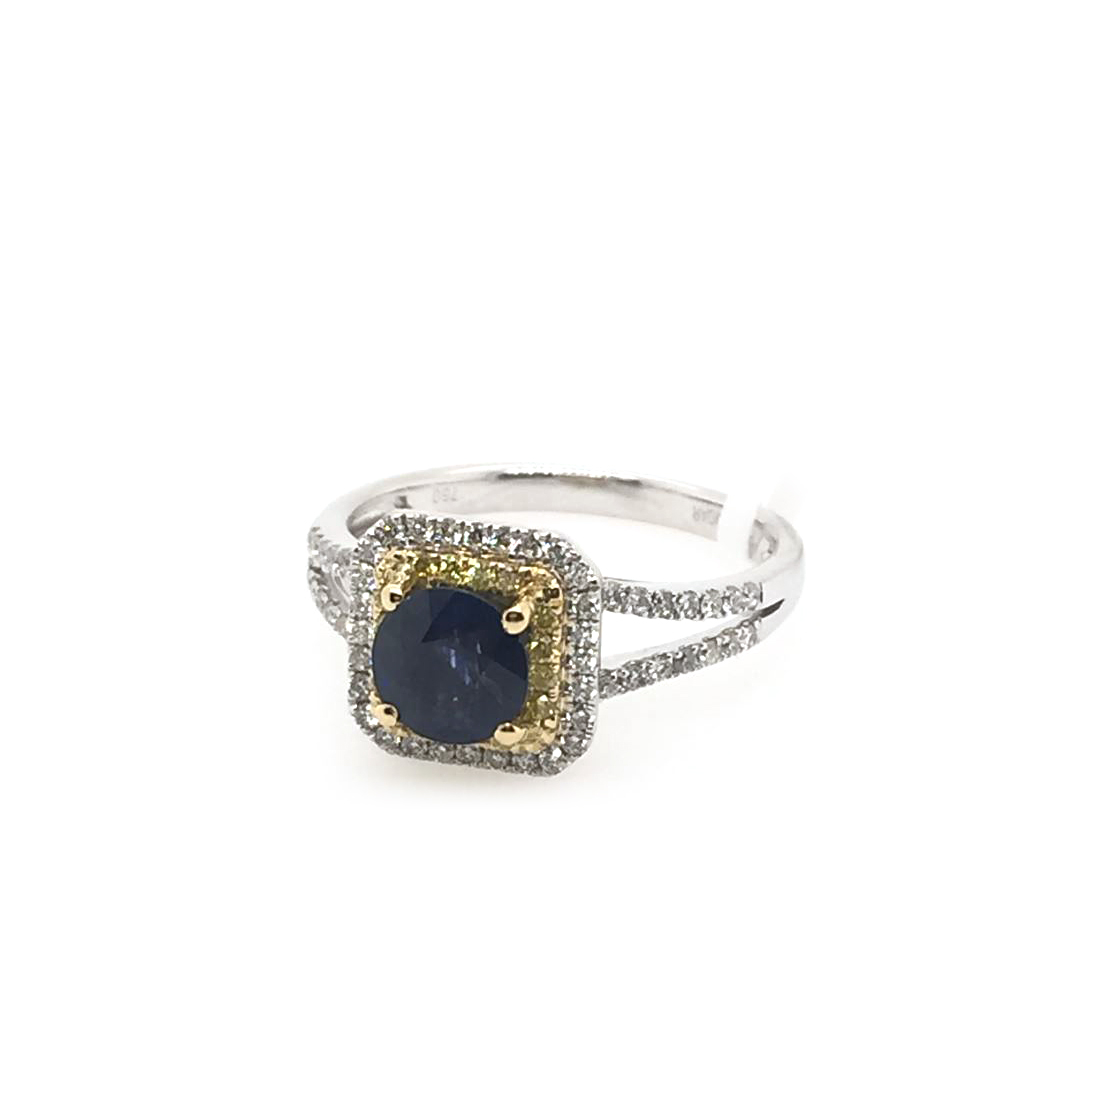 18 Karat White Gold Blue Sapphire, Fancy Yellow and White Diamond Ring